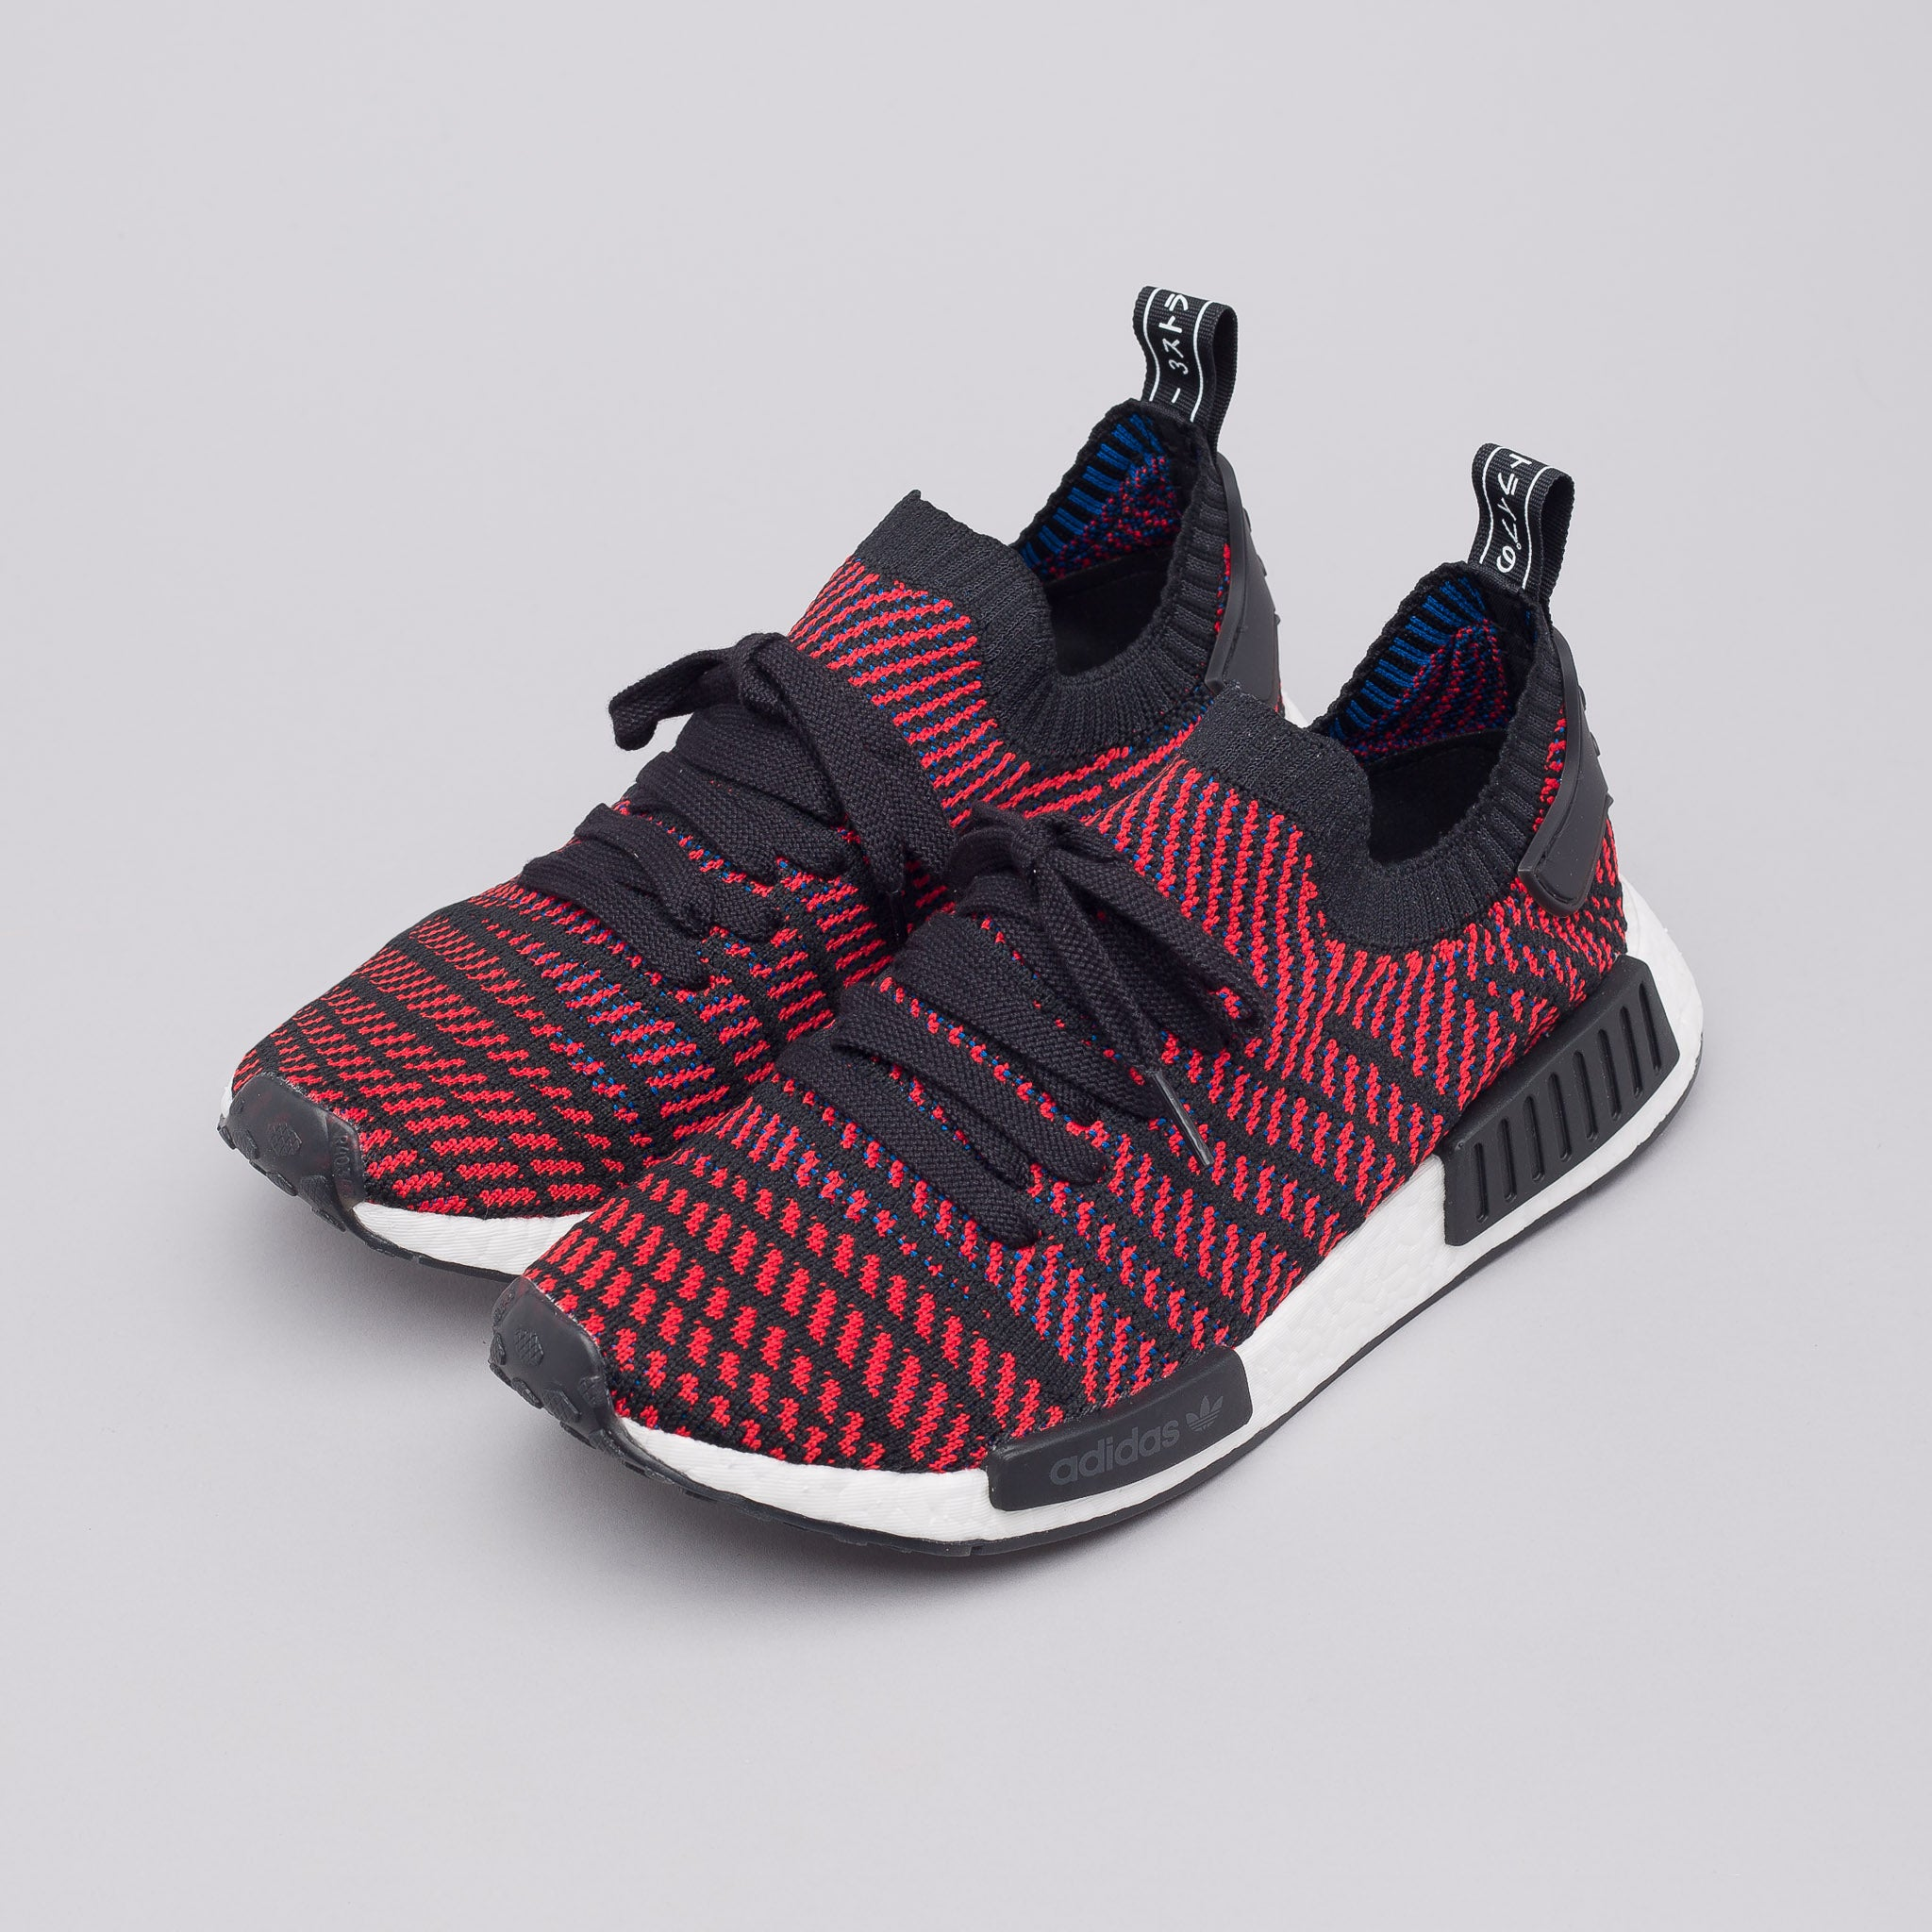 Adidas NMD R1 Runner WOMENS Salmon S76006 from